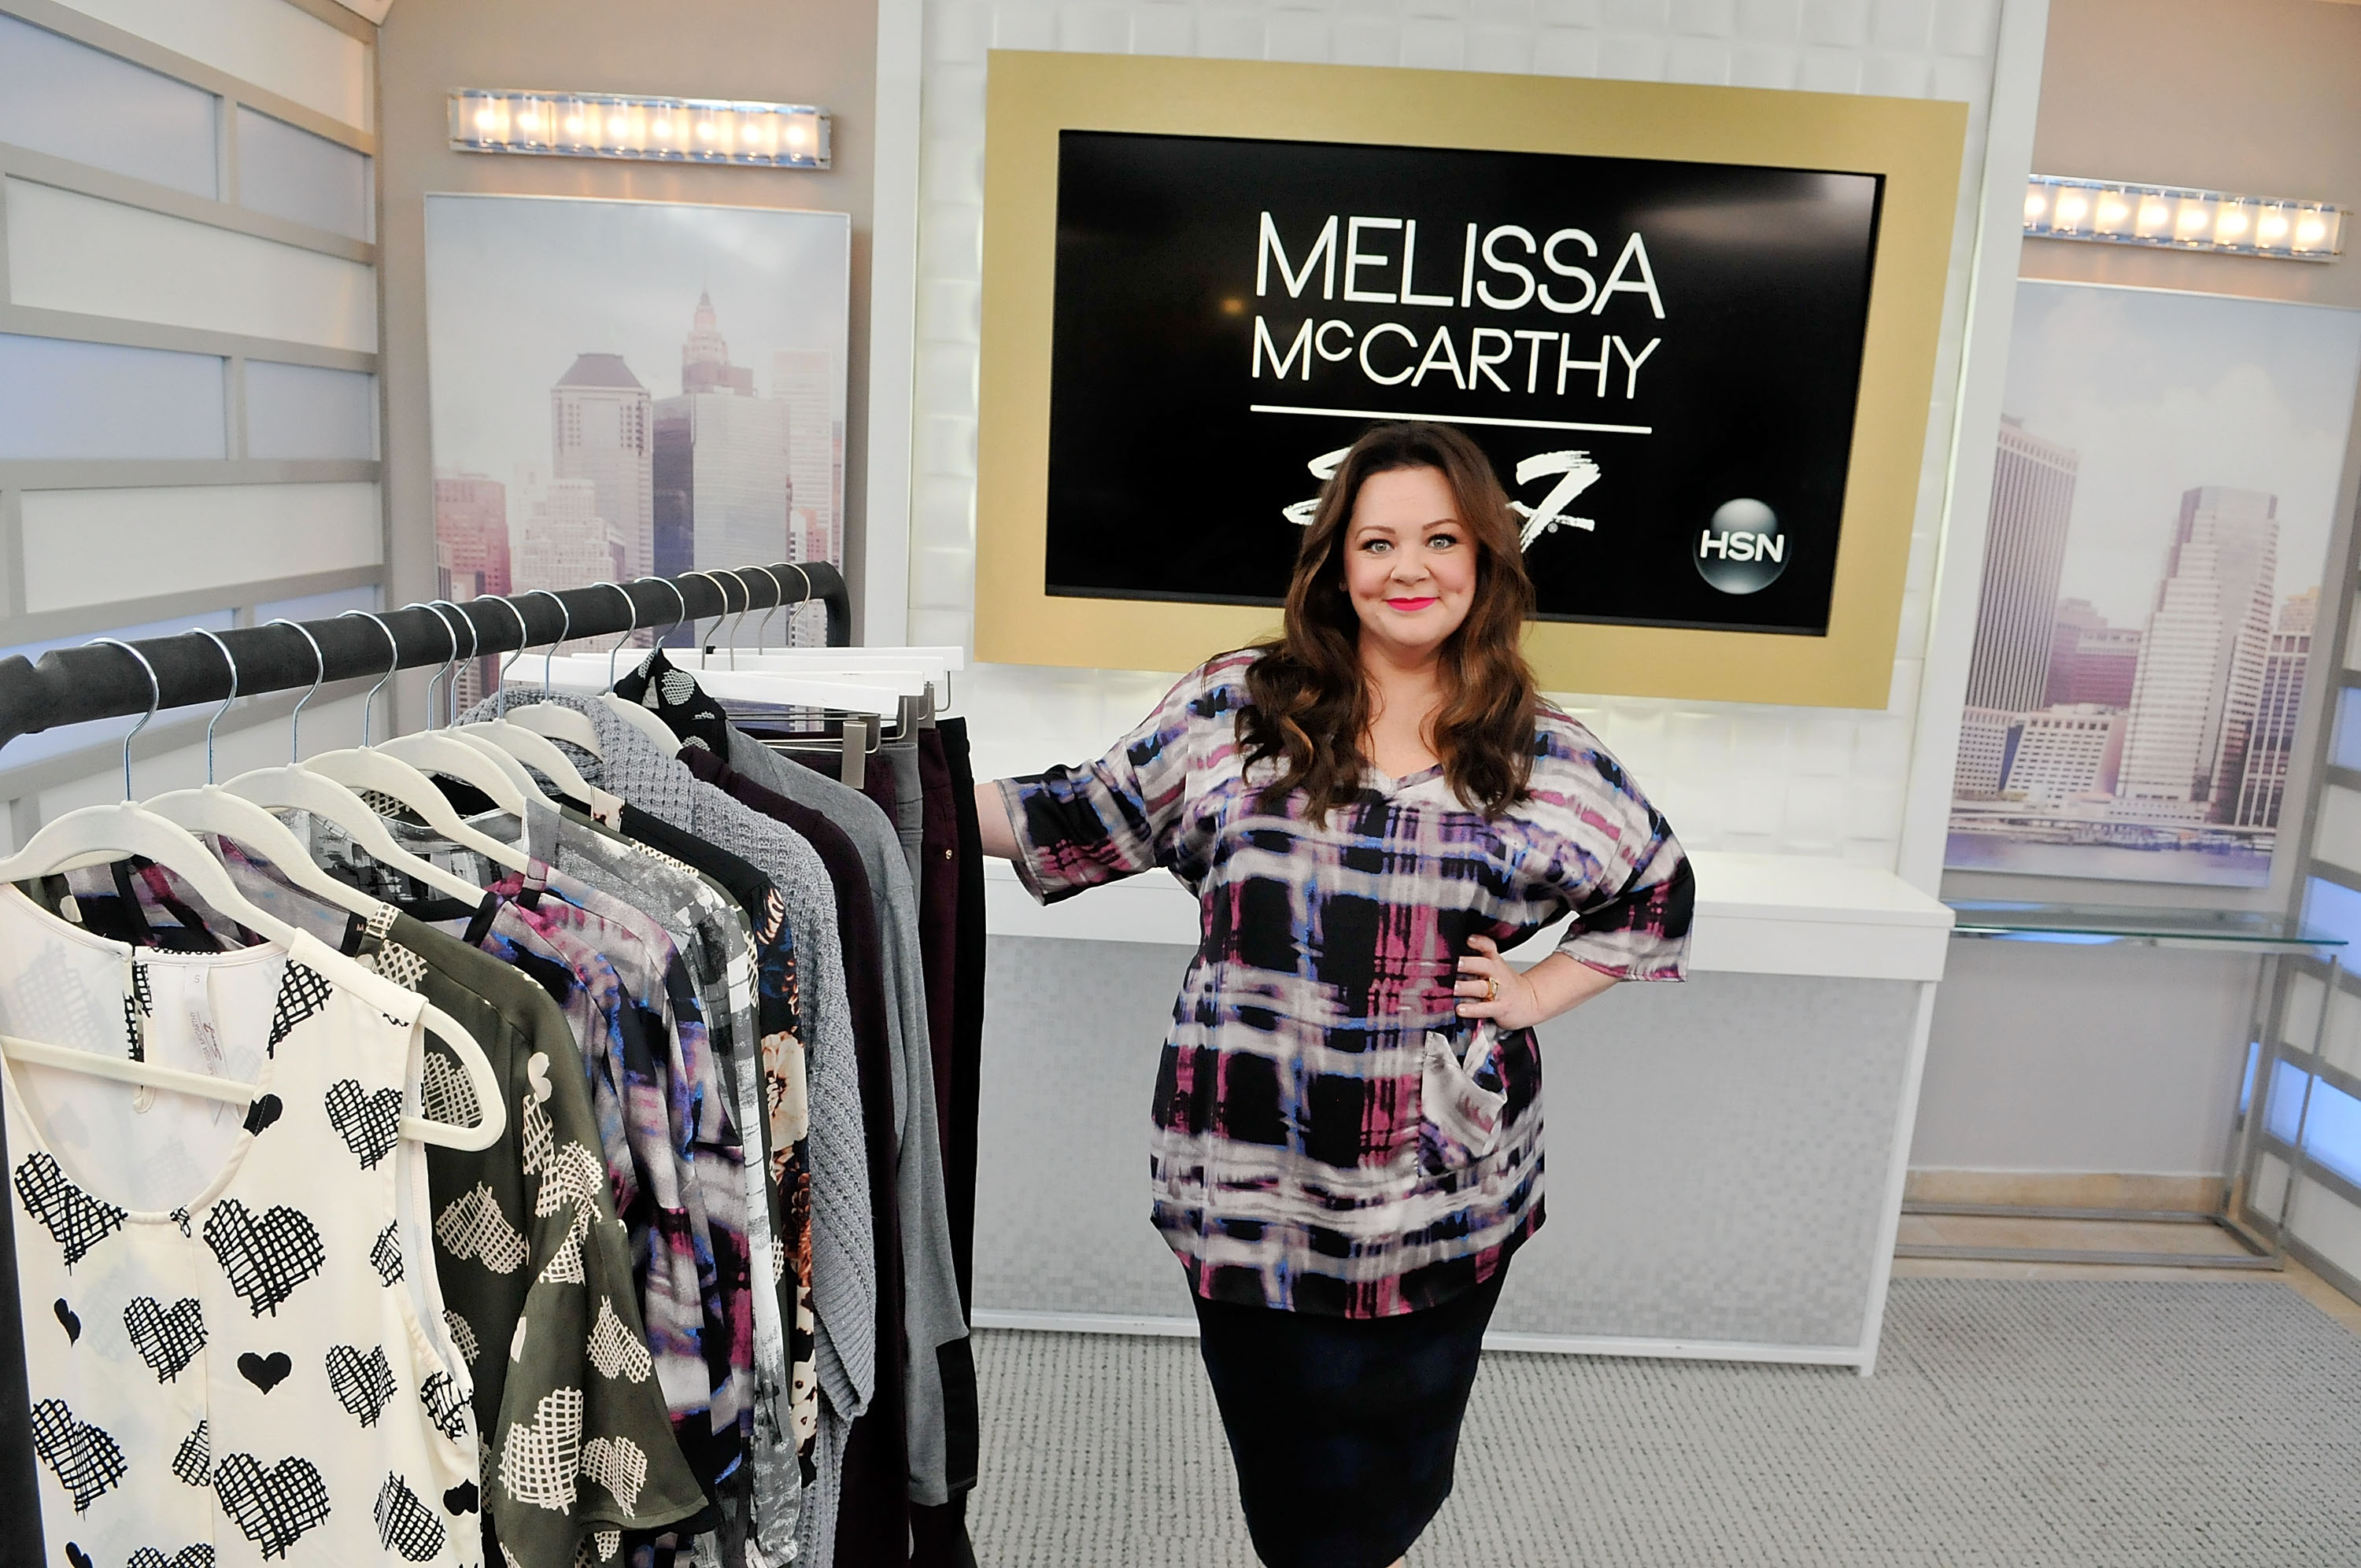 Melissa McCarthy debuts first fashion collectionat HSN Studios on August 13, 2015 in St Petersburg, Fla.